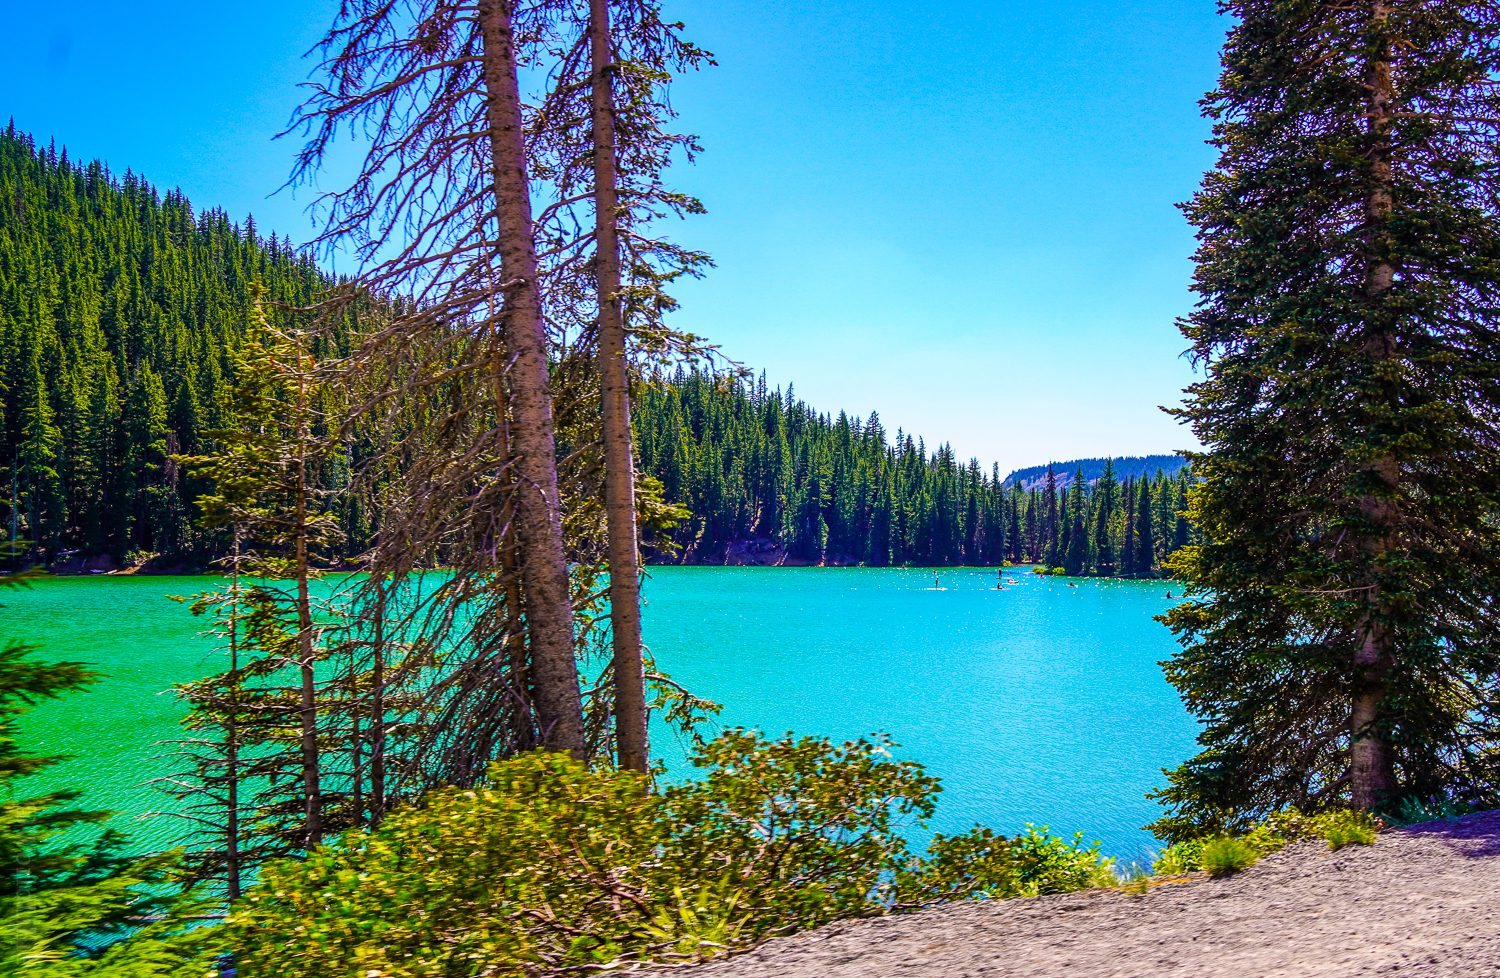 Why is Devil's lake so azure blue-green?